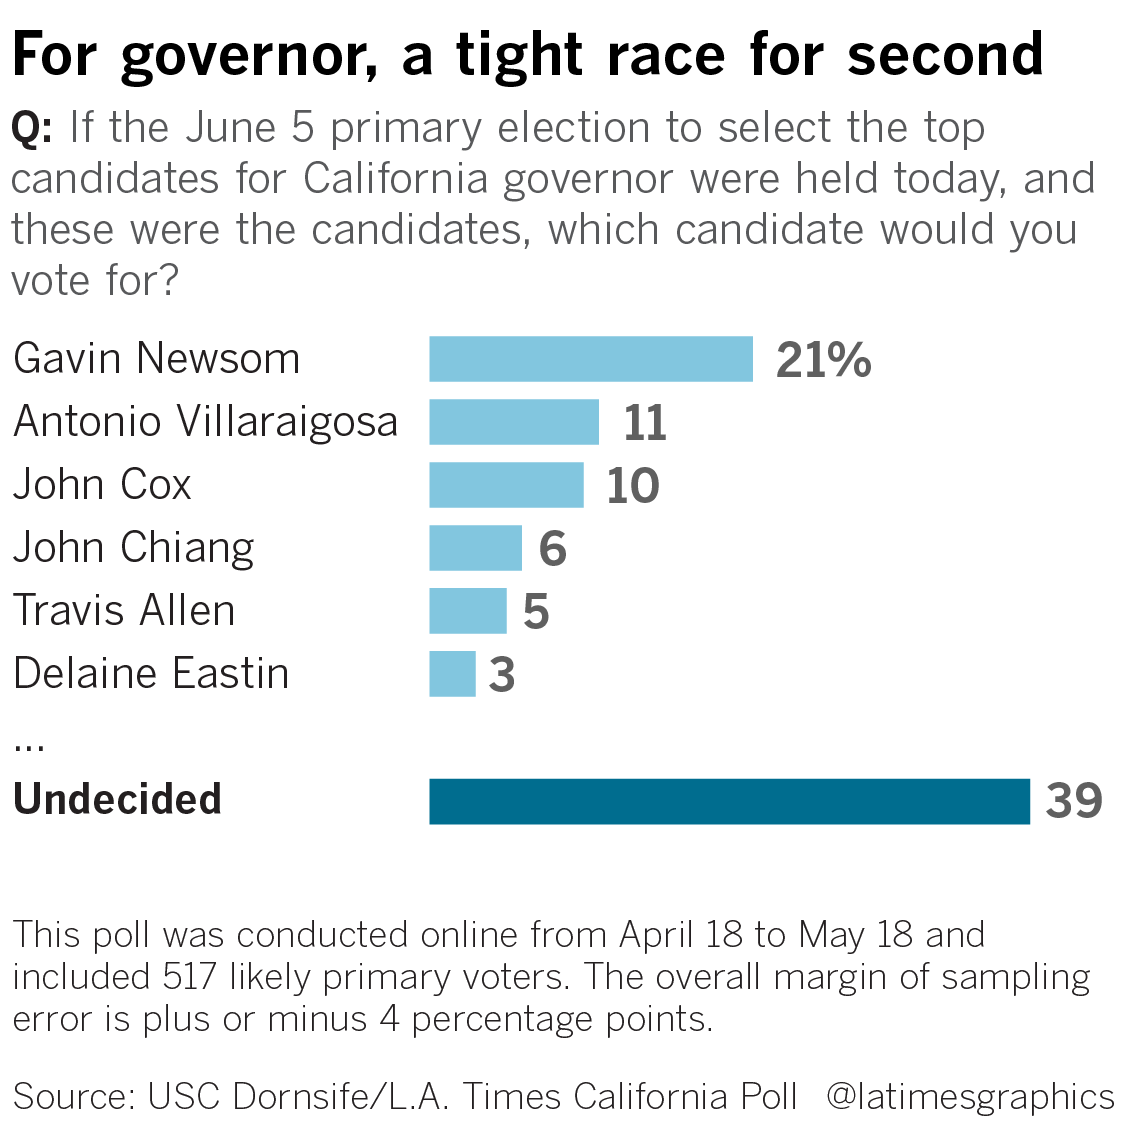 If the June 5 primary election to select the top candidates for California governor were held today and these where the candidates, which candidate would you vote for?